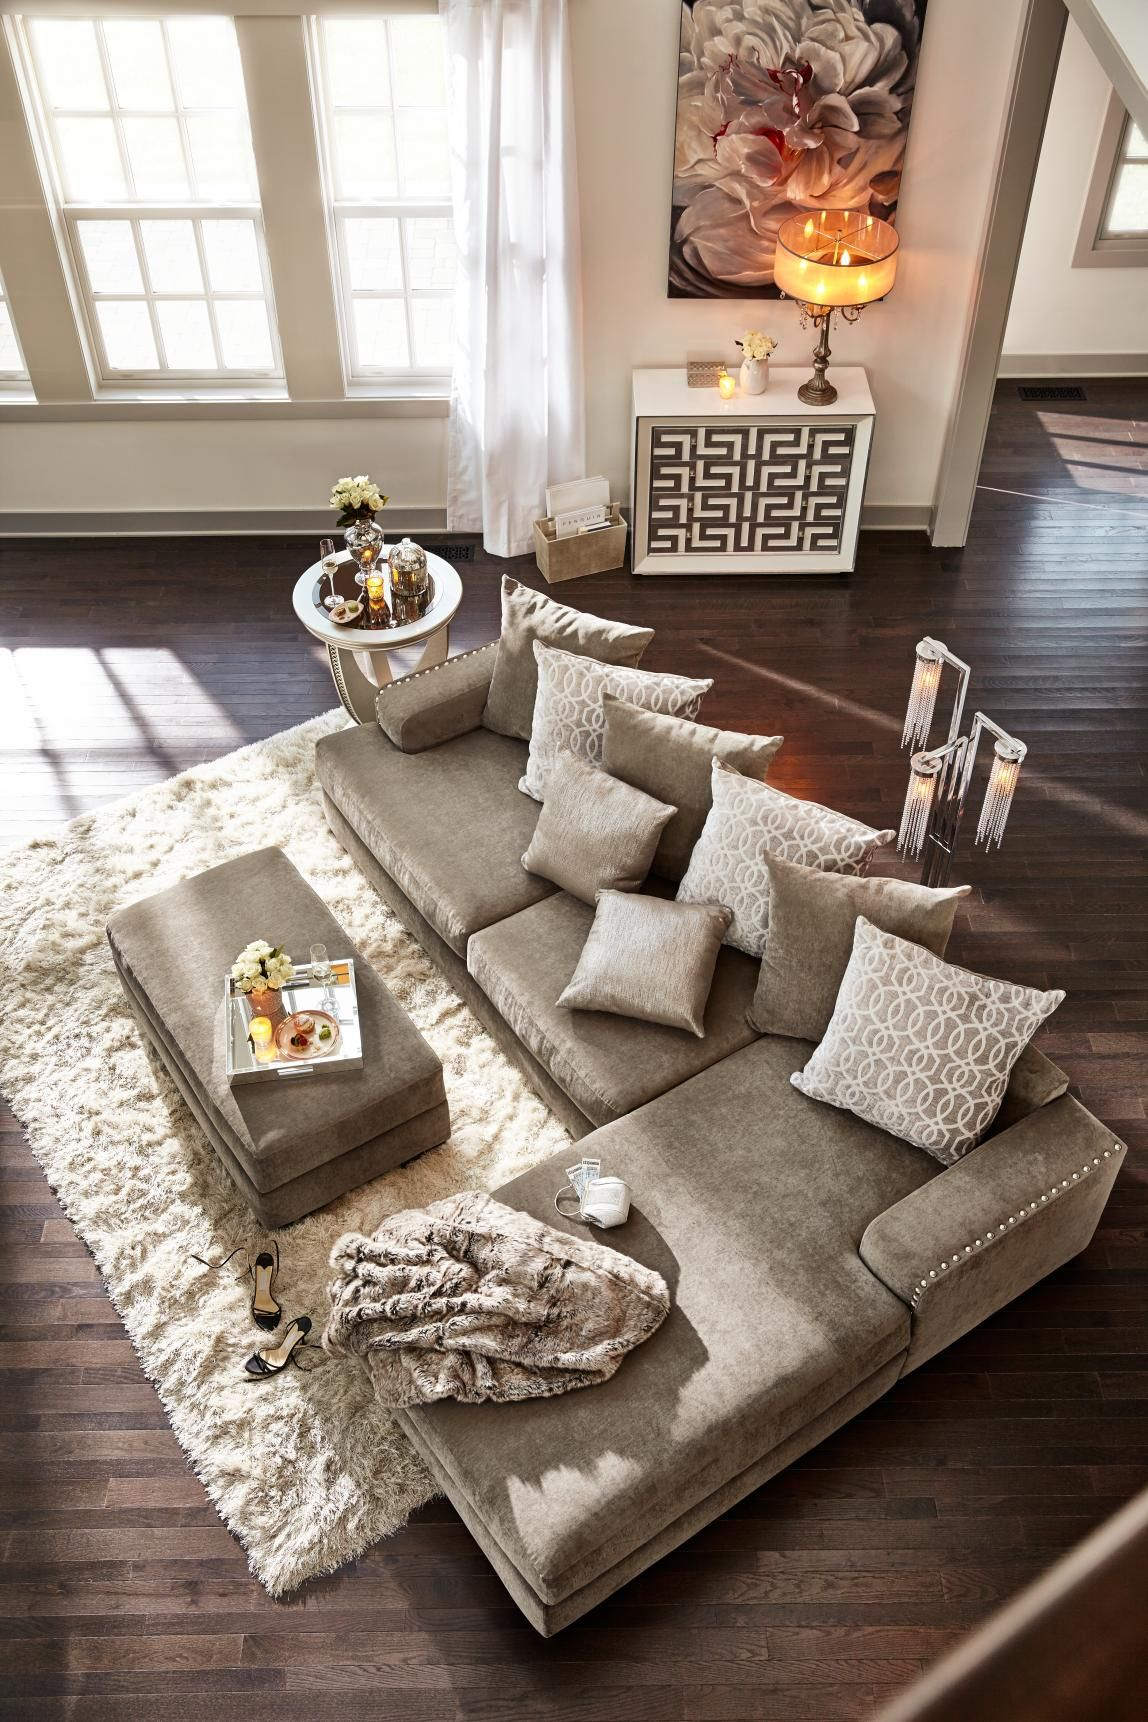 Sofás y modulares | Arte | Pinterest | Sectional living rooms ...